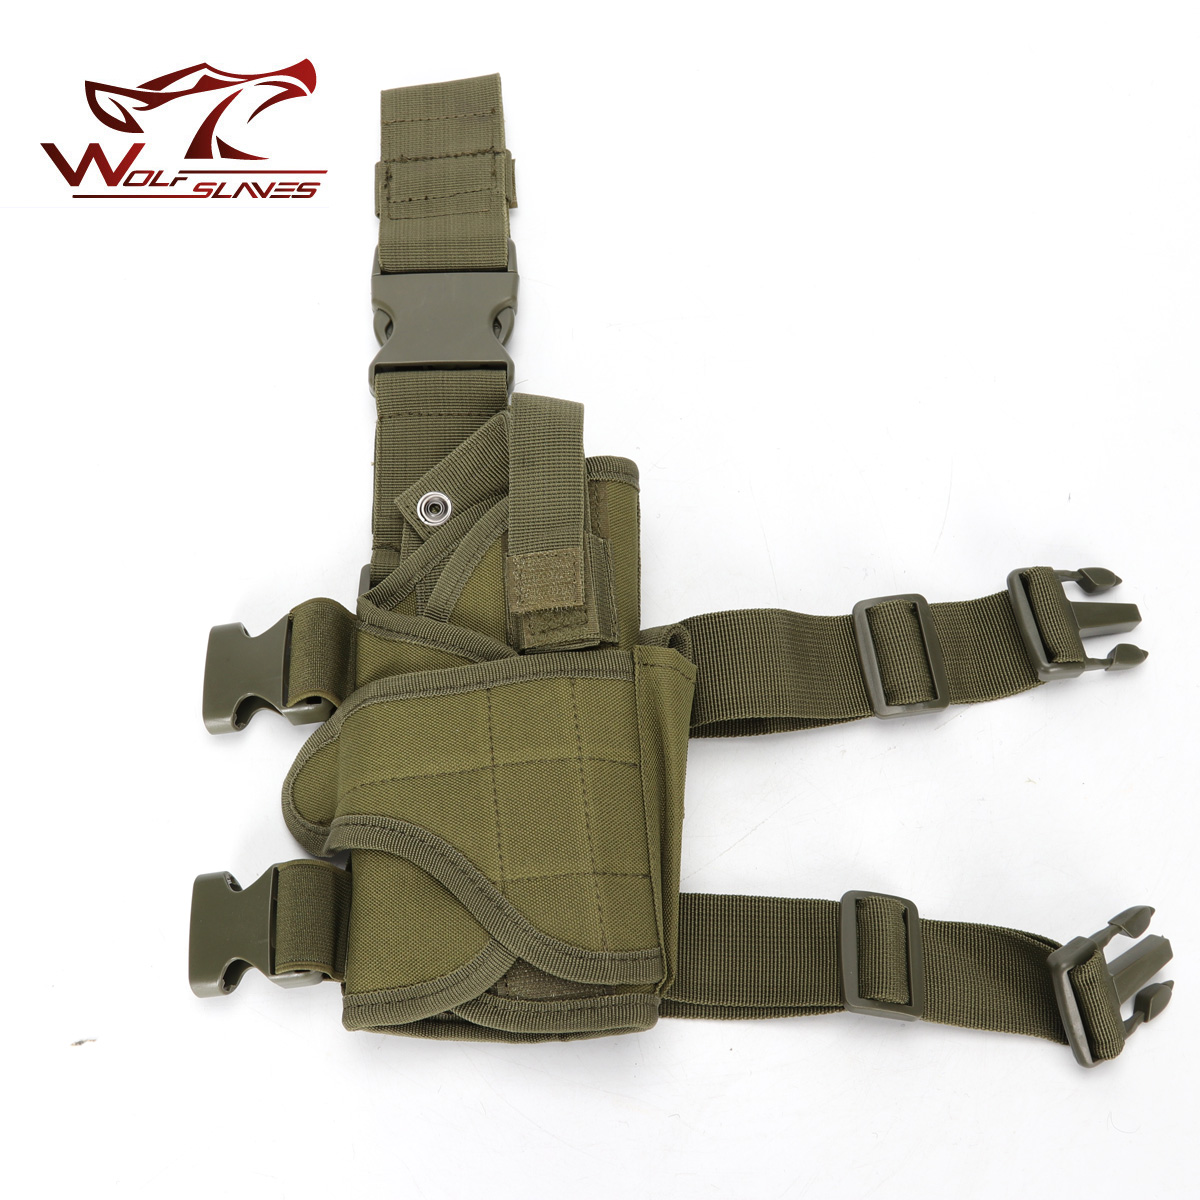 Universal Tactical Pistol Drop Leg Thigh Holster Airsoft w/ Mag Pouch Right Hand with Adjustable Magic Strap Hunting Accessories tactical 1911 leg holster right hand paddle drop thigh pistol gun holster with snap button magazine torch pouch for colt 1911